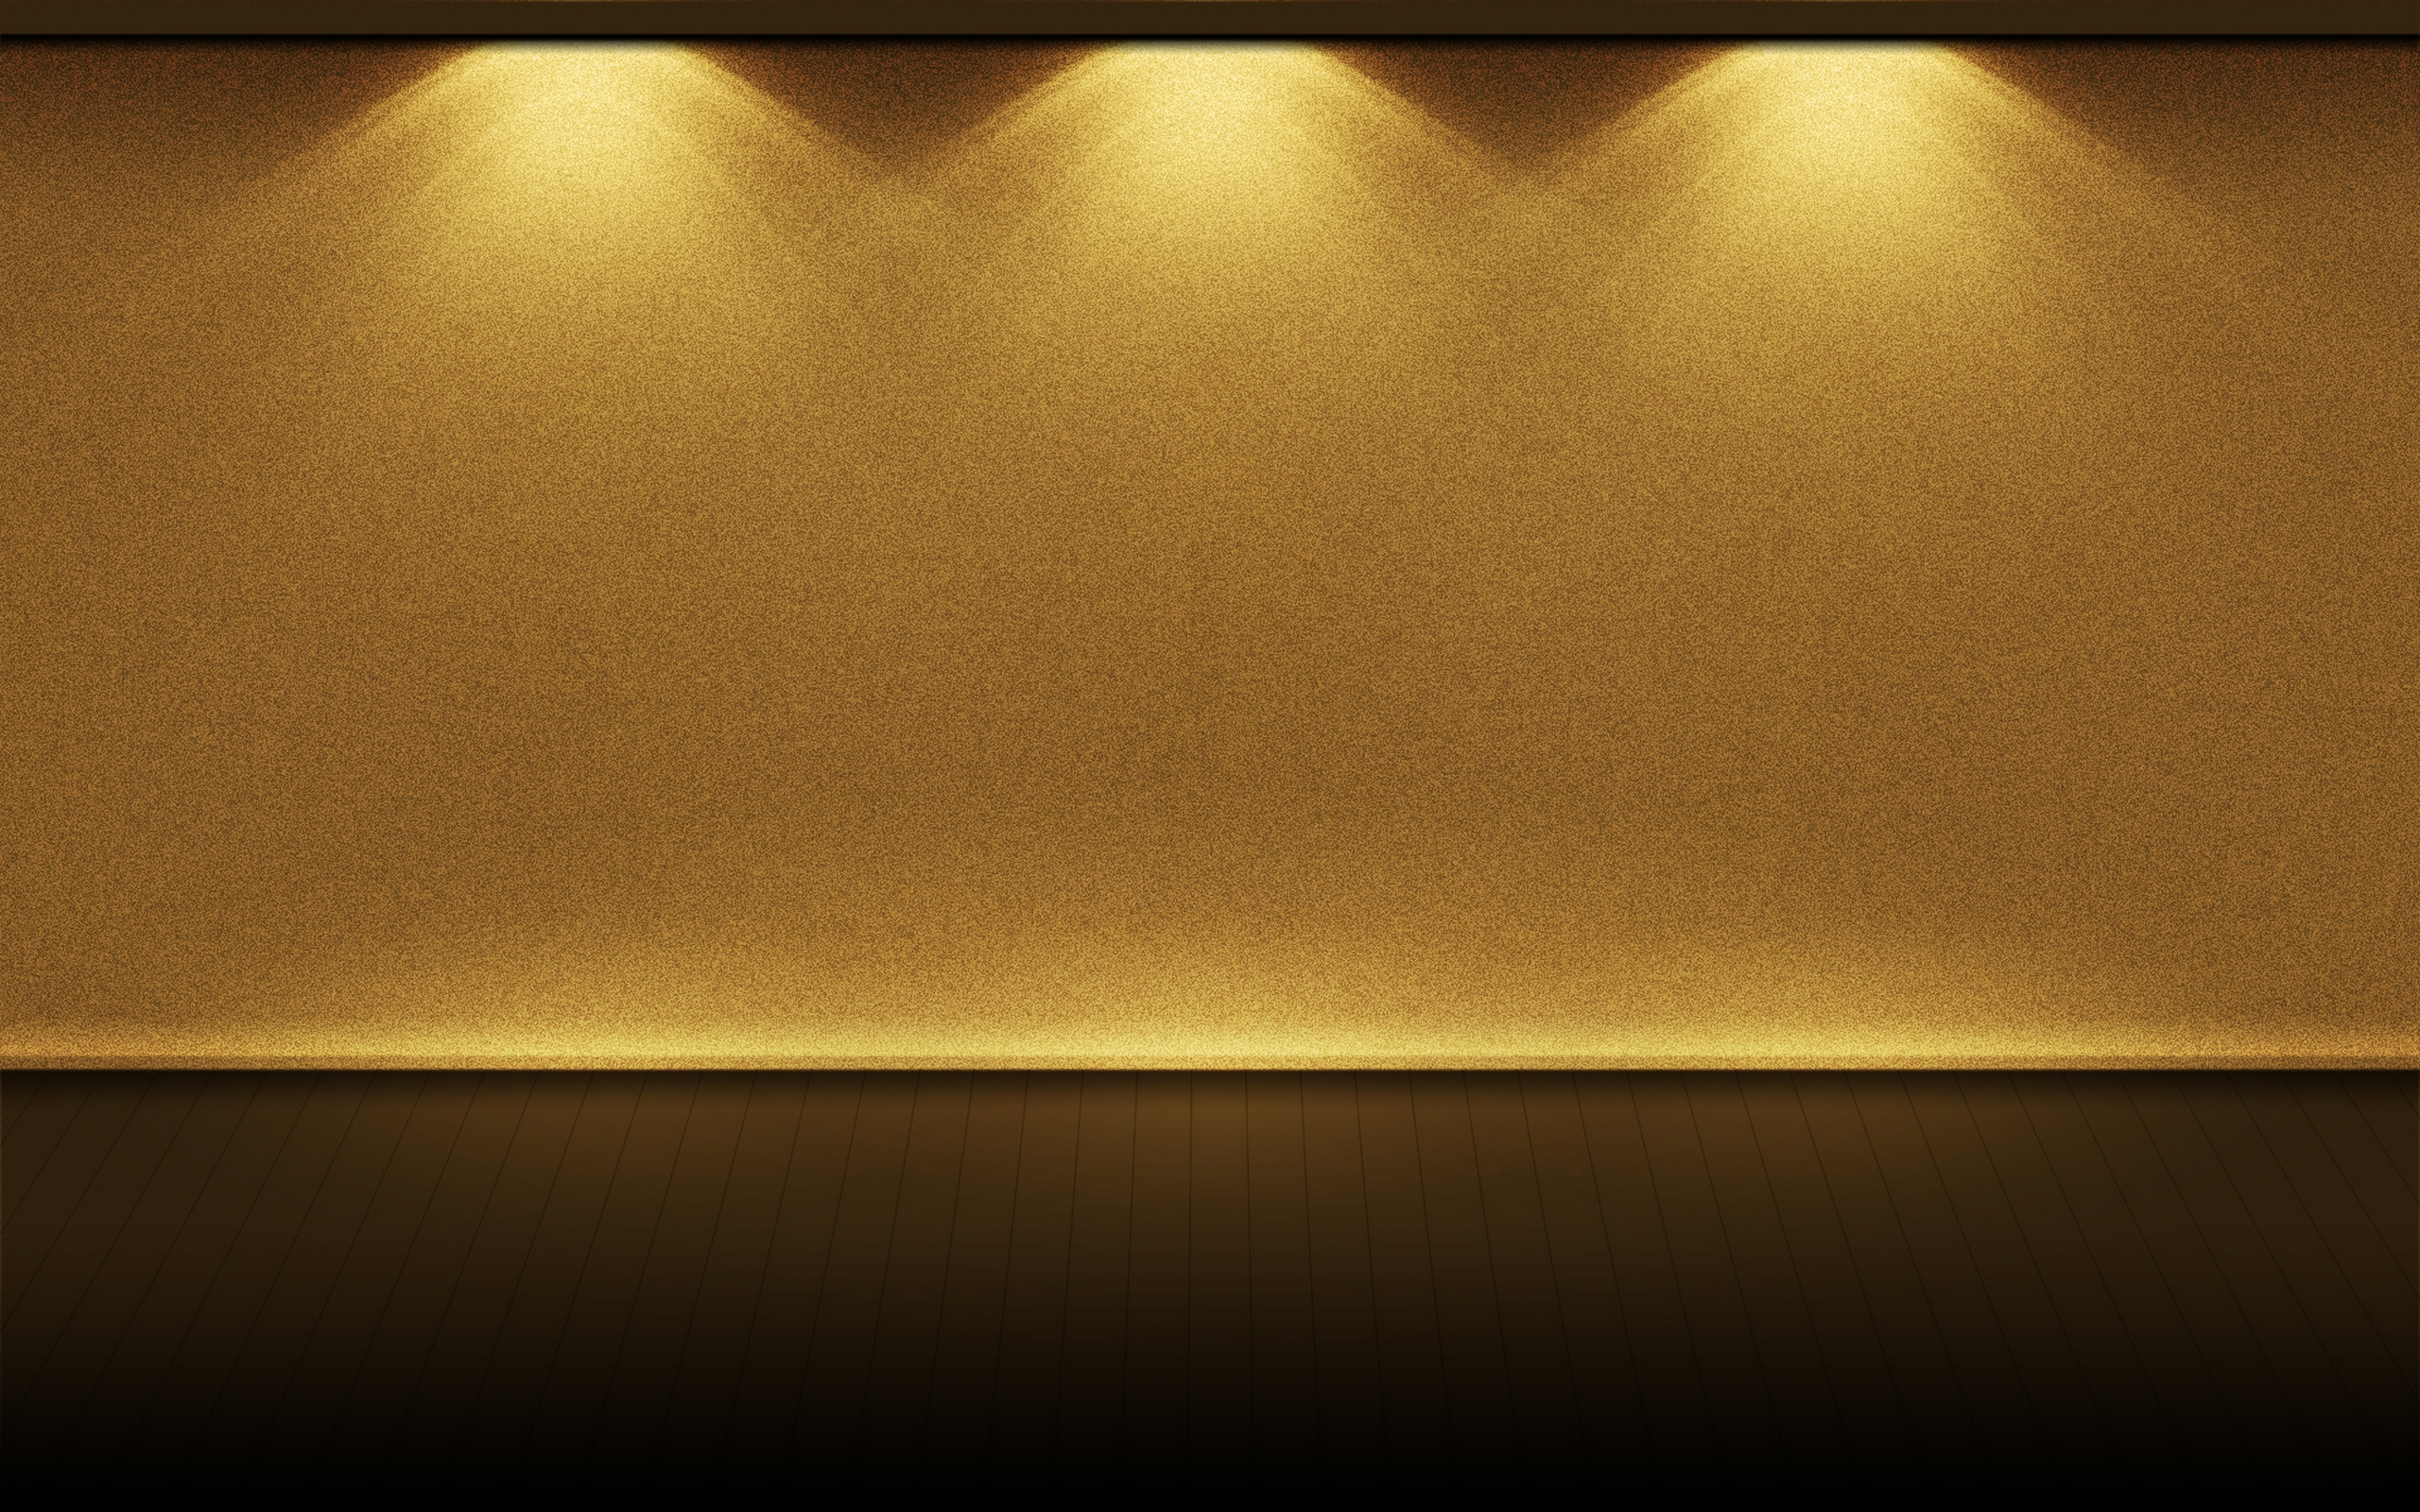 Gold Lights HD Wallpapers Hintergrnde 2560x1600